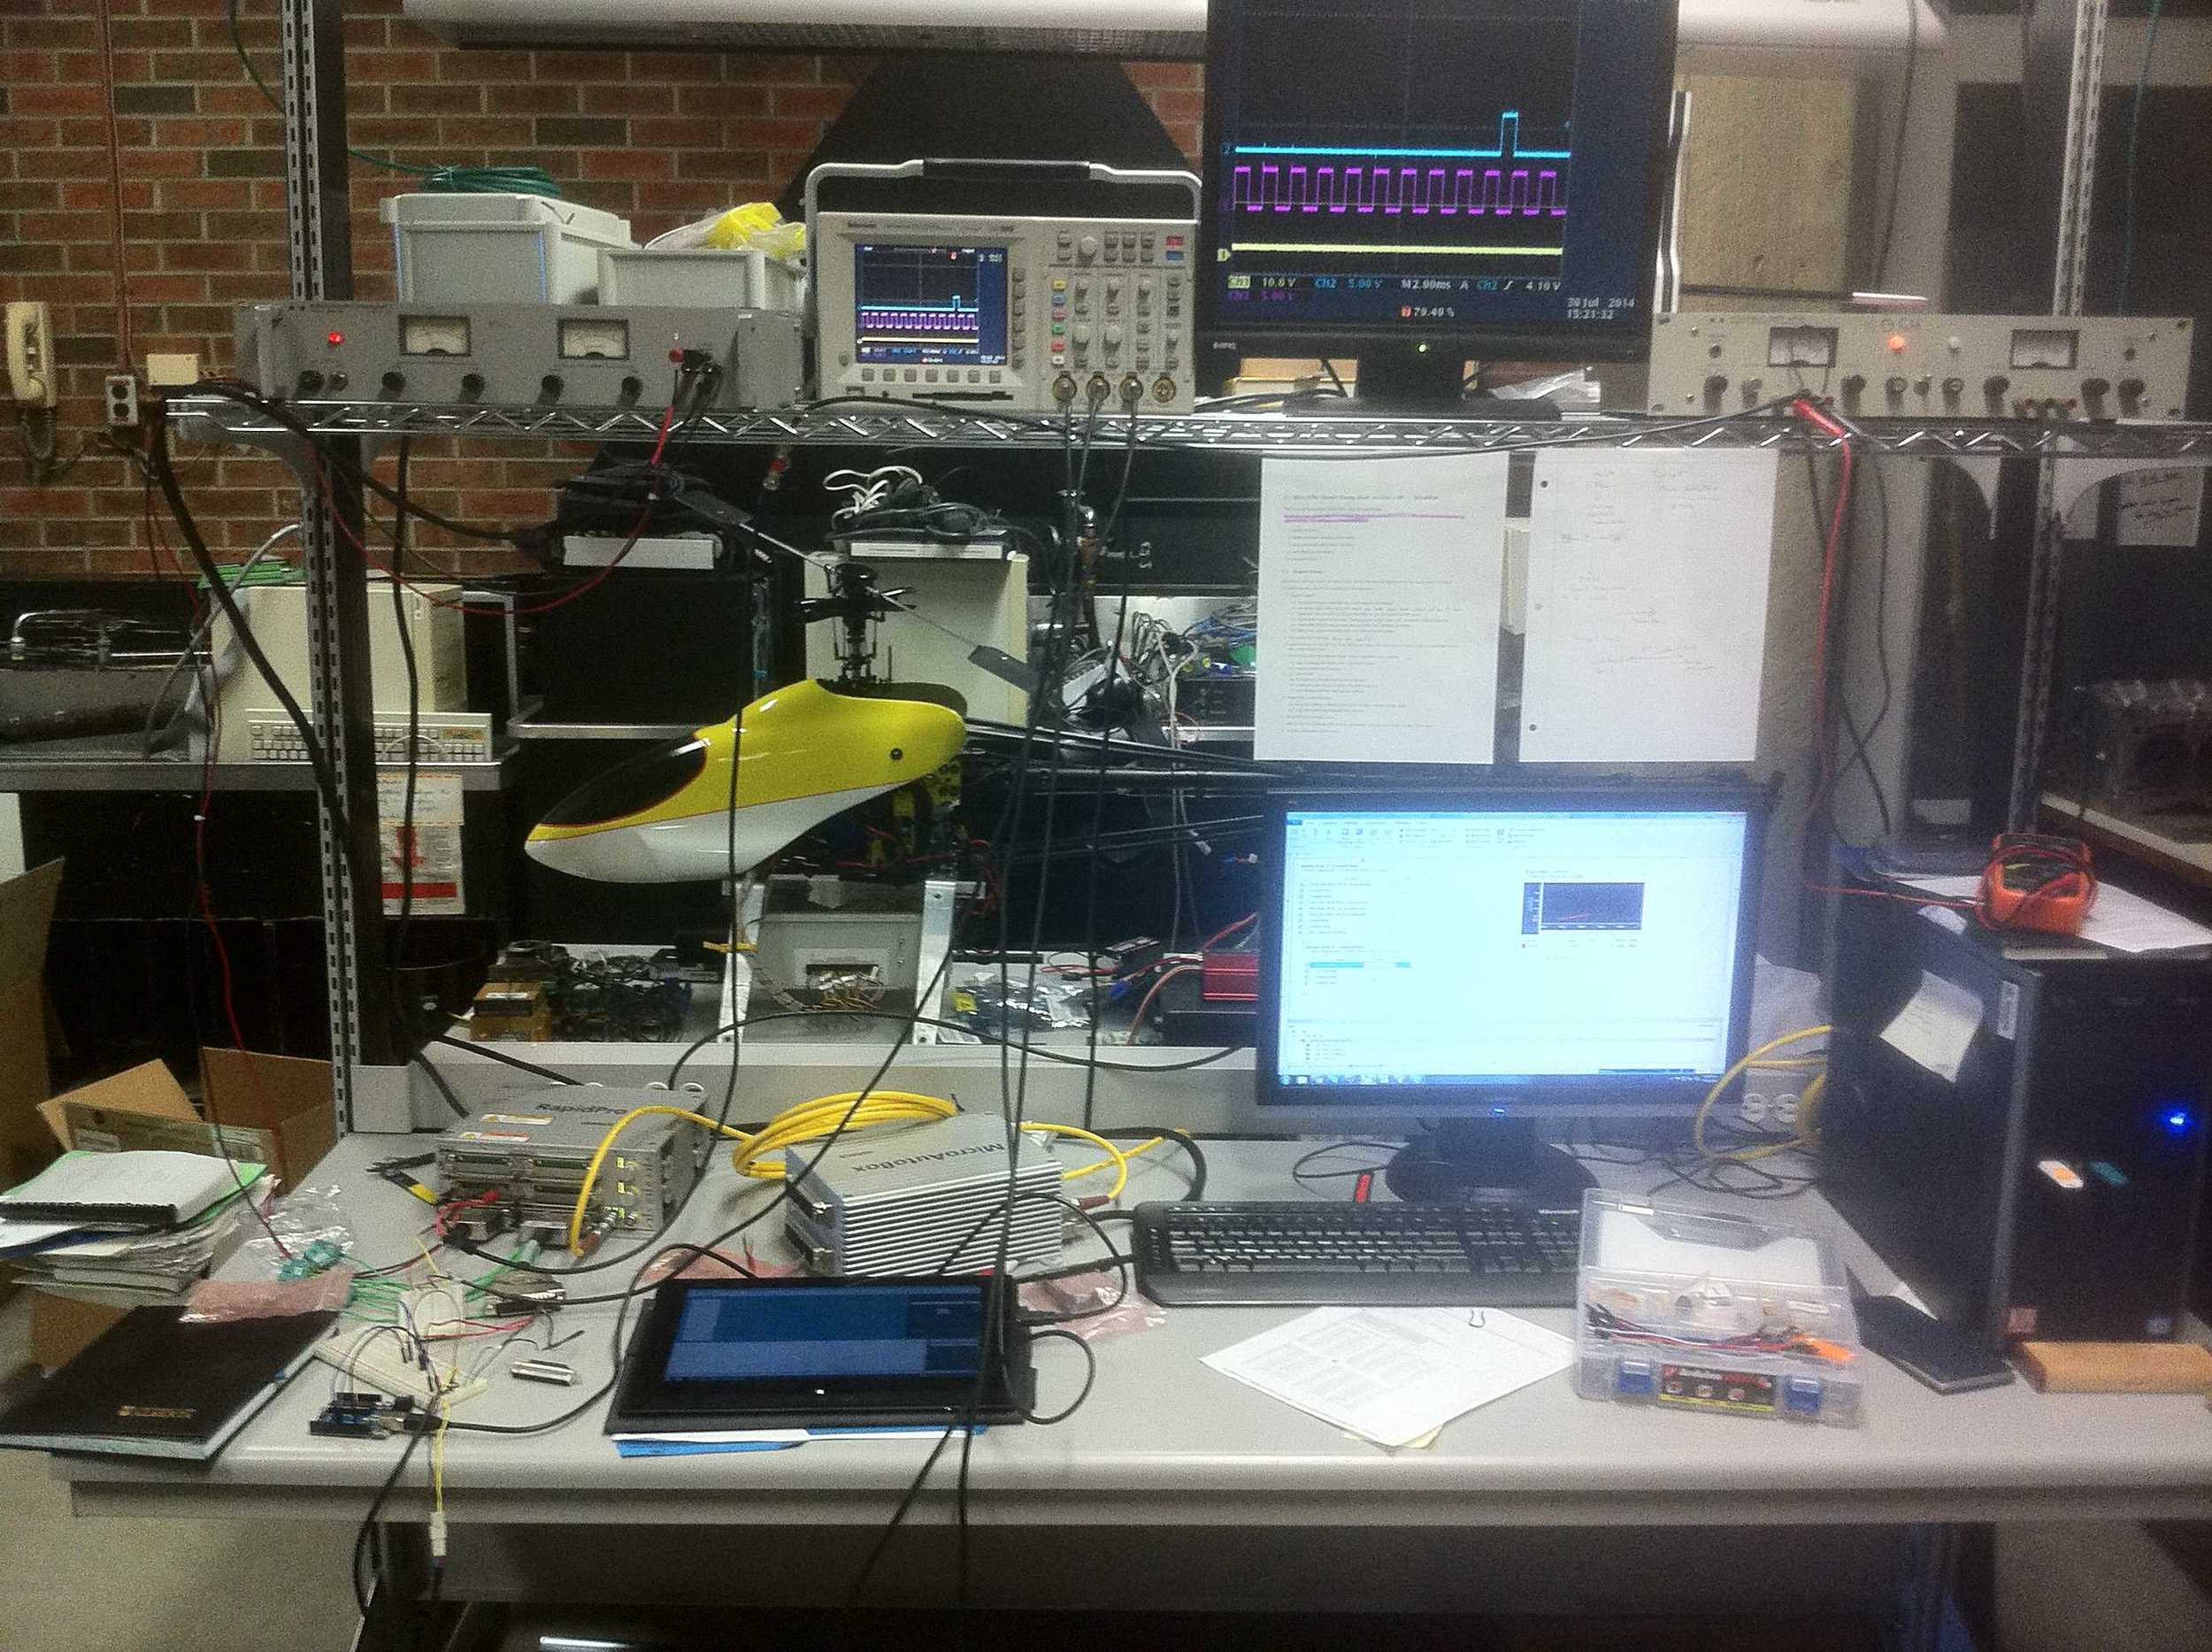 Lab setup at this point.